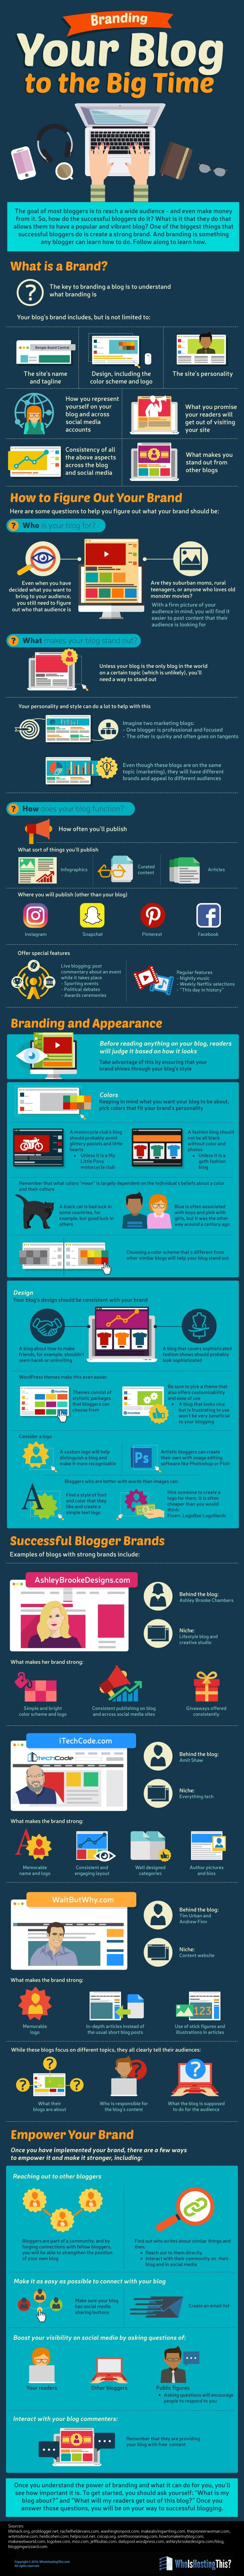 Branding Your Blog to the Big Time [Infographic]